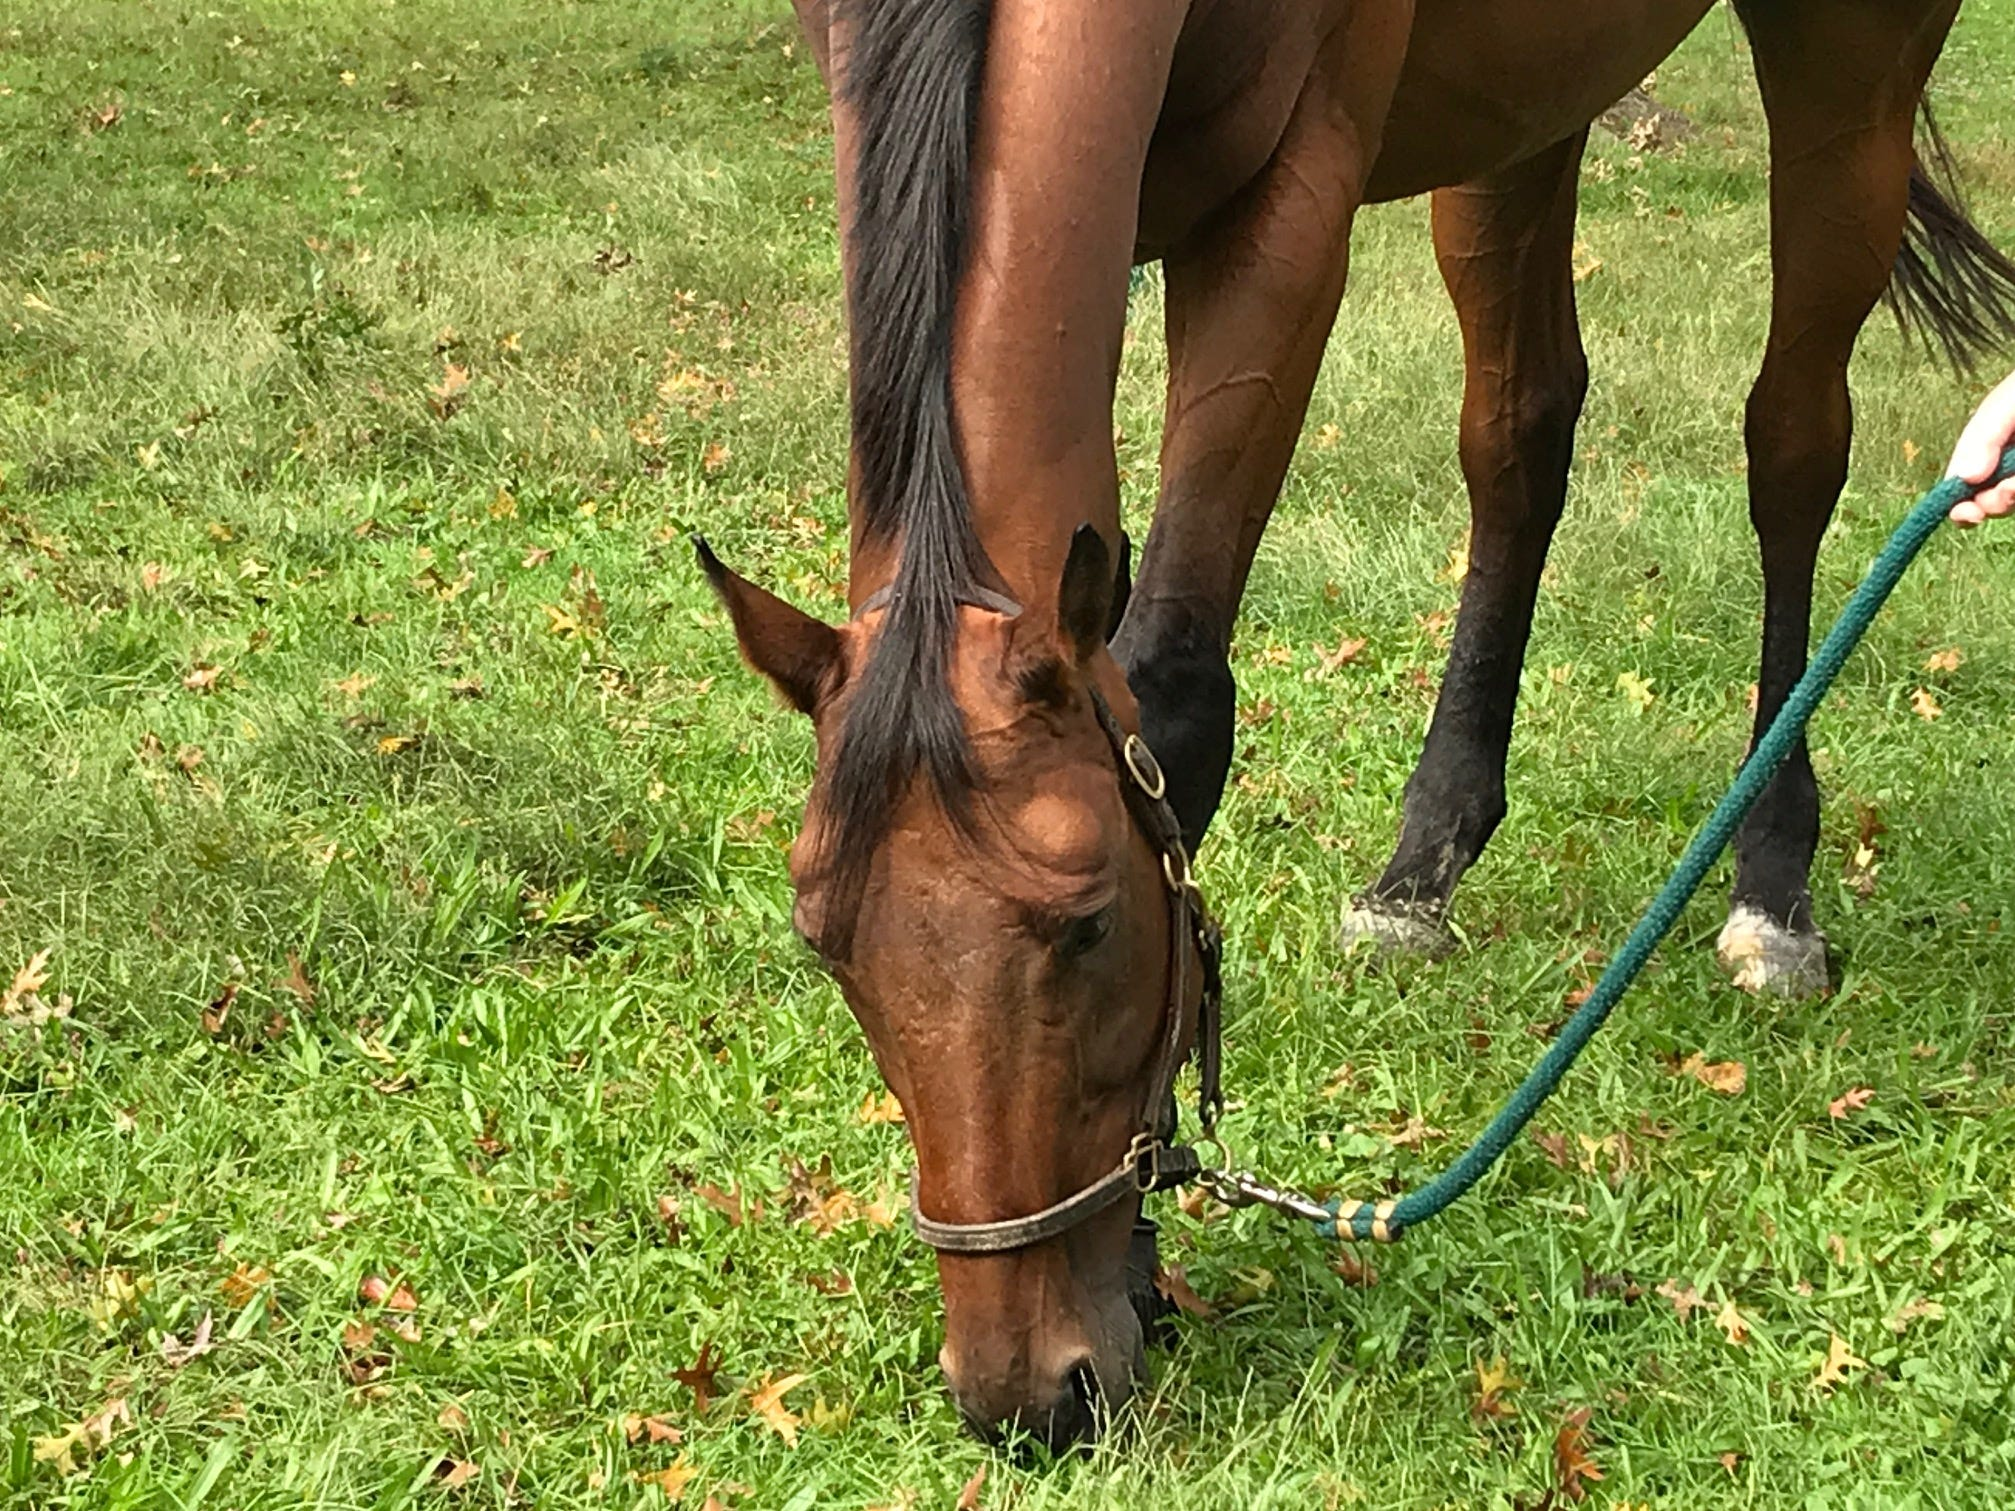 This horse munches on grass during  Sunday's Animal Initiative Committee's Celebration of Animals at Leland Avenue Park in Plainfield.